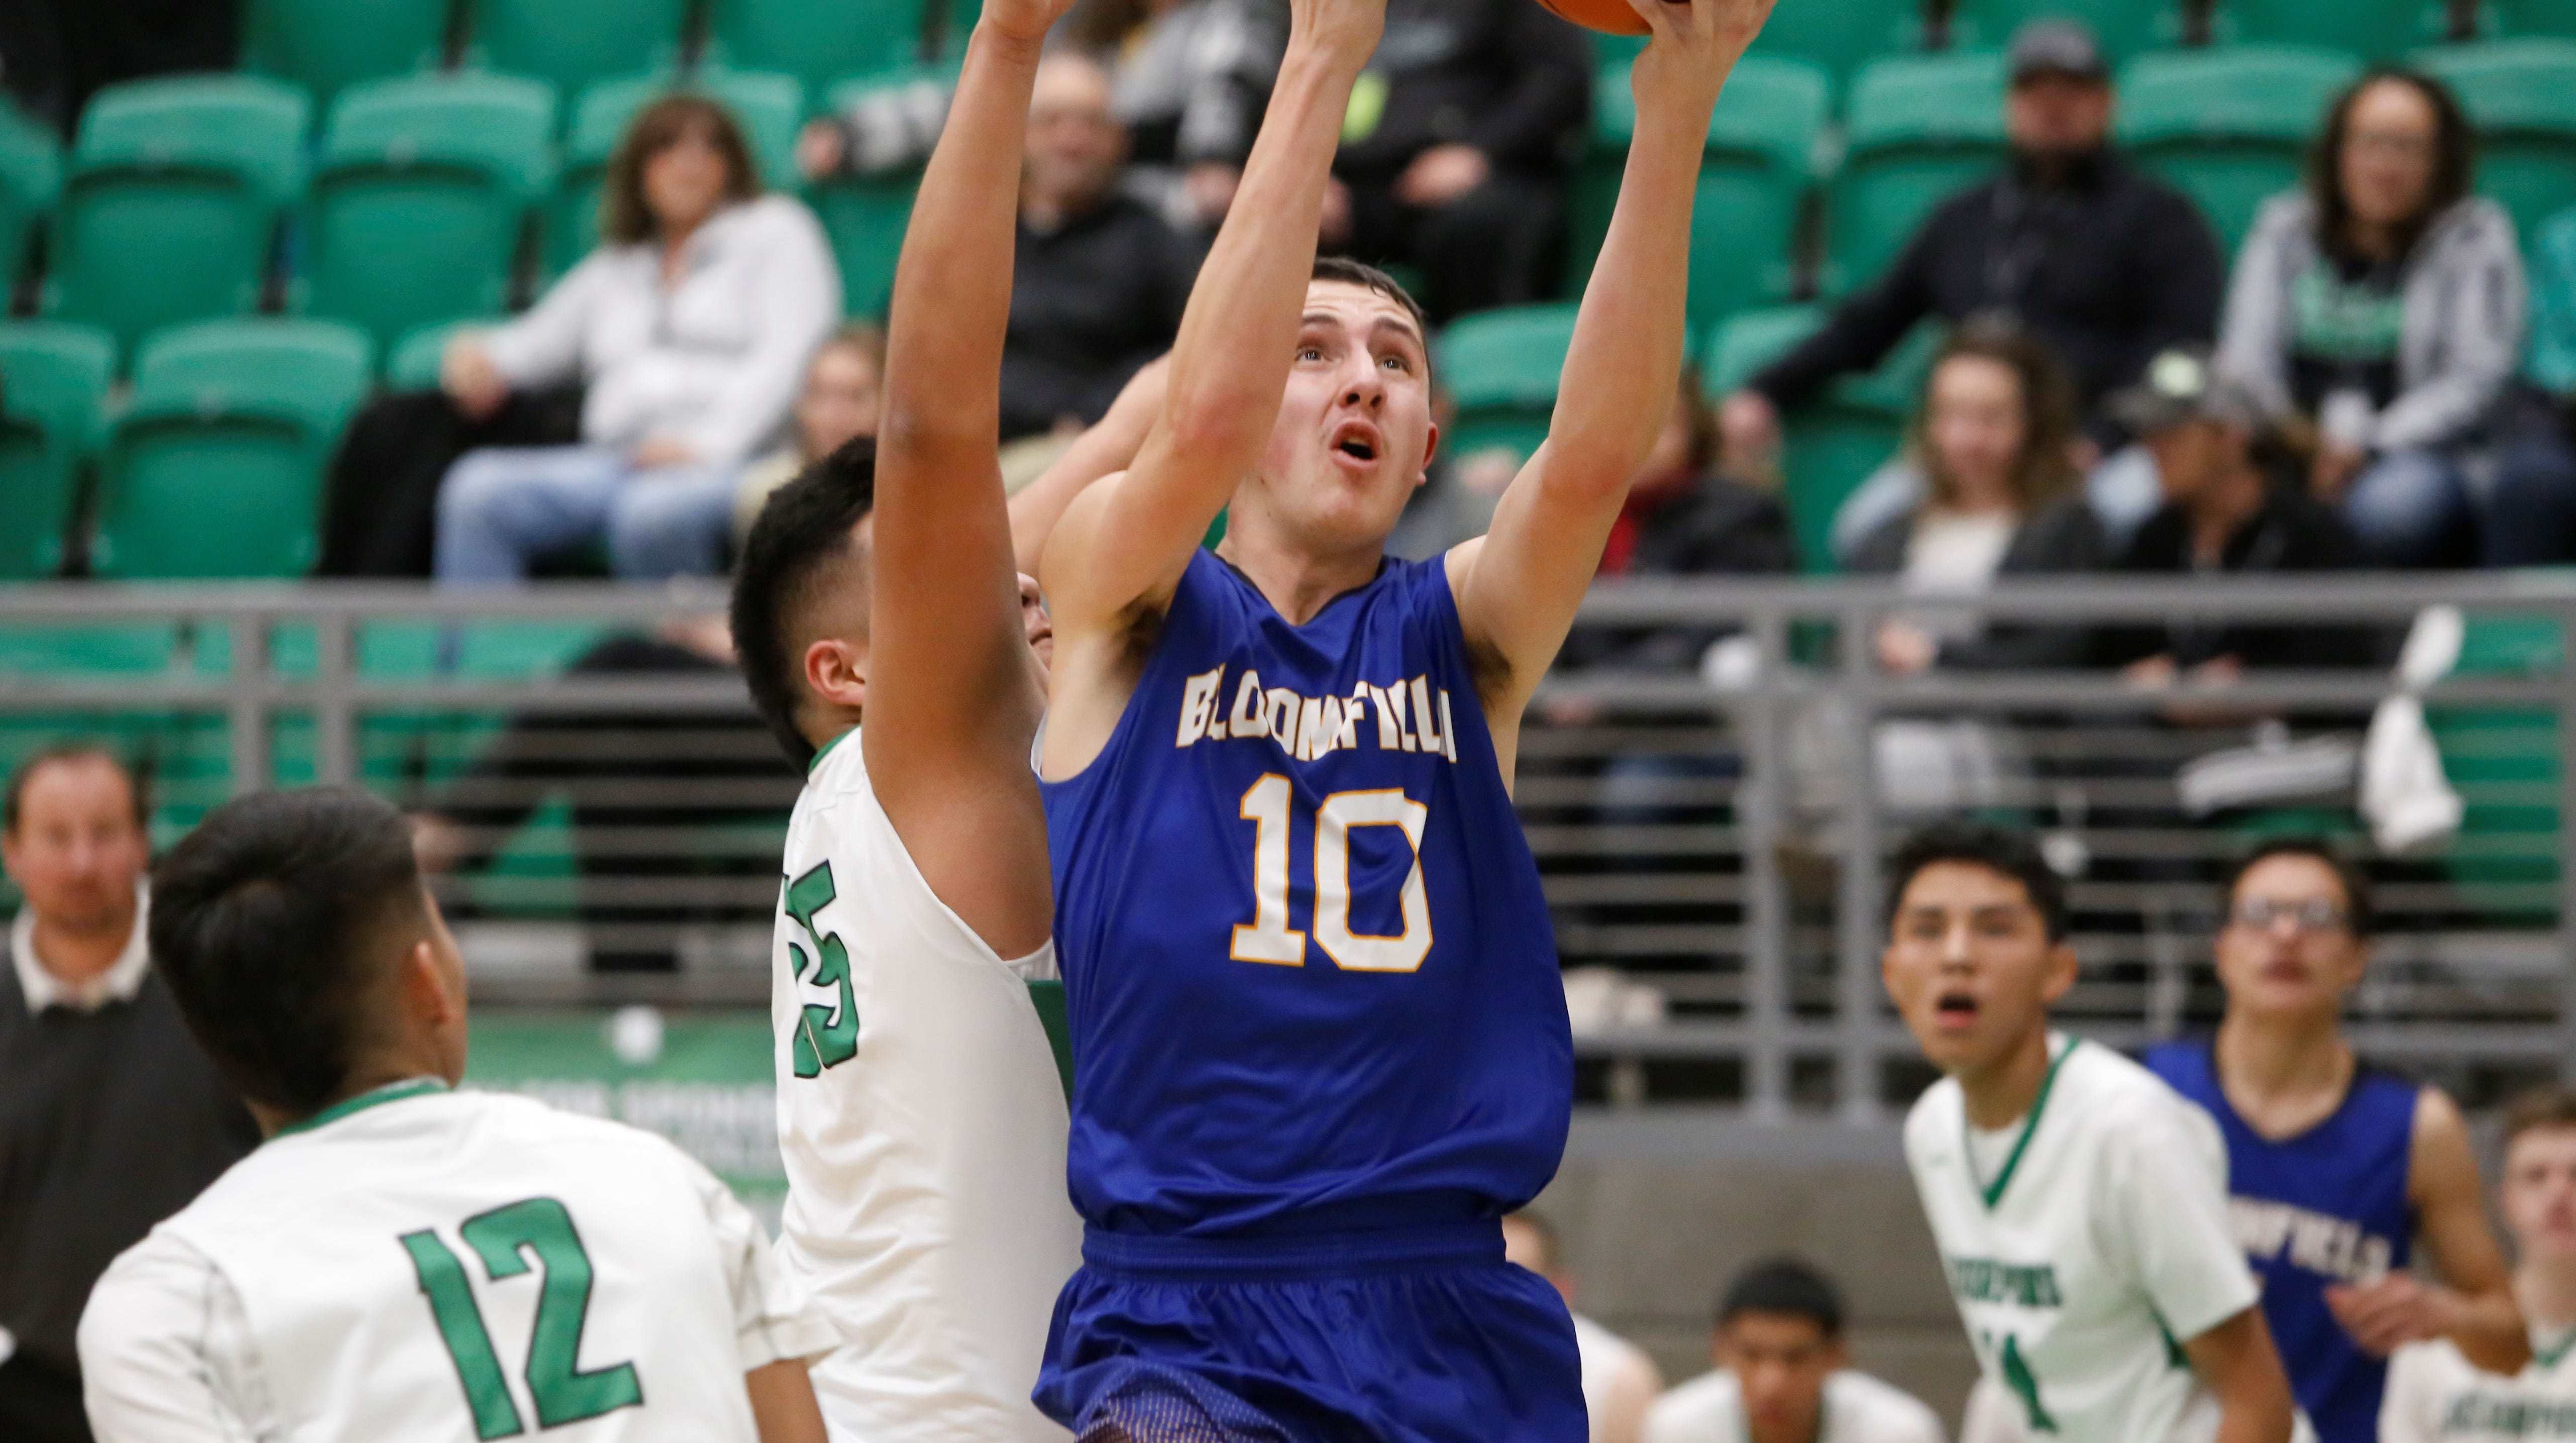 Bloomfield's Josh Boehm drives to the basket for a layup against Farmington during Thursday's game at Scorpion Arena in Farmington.